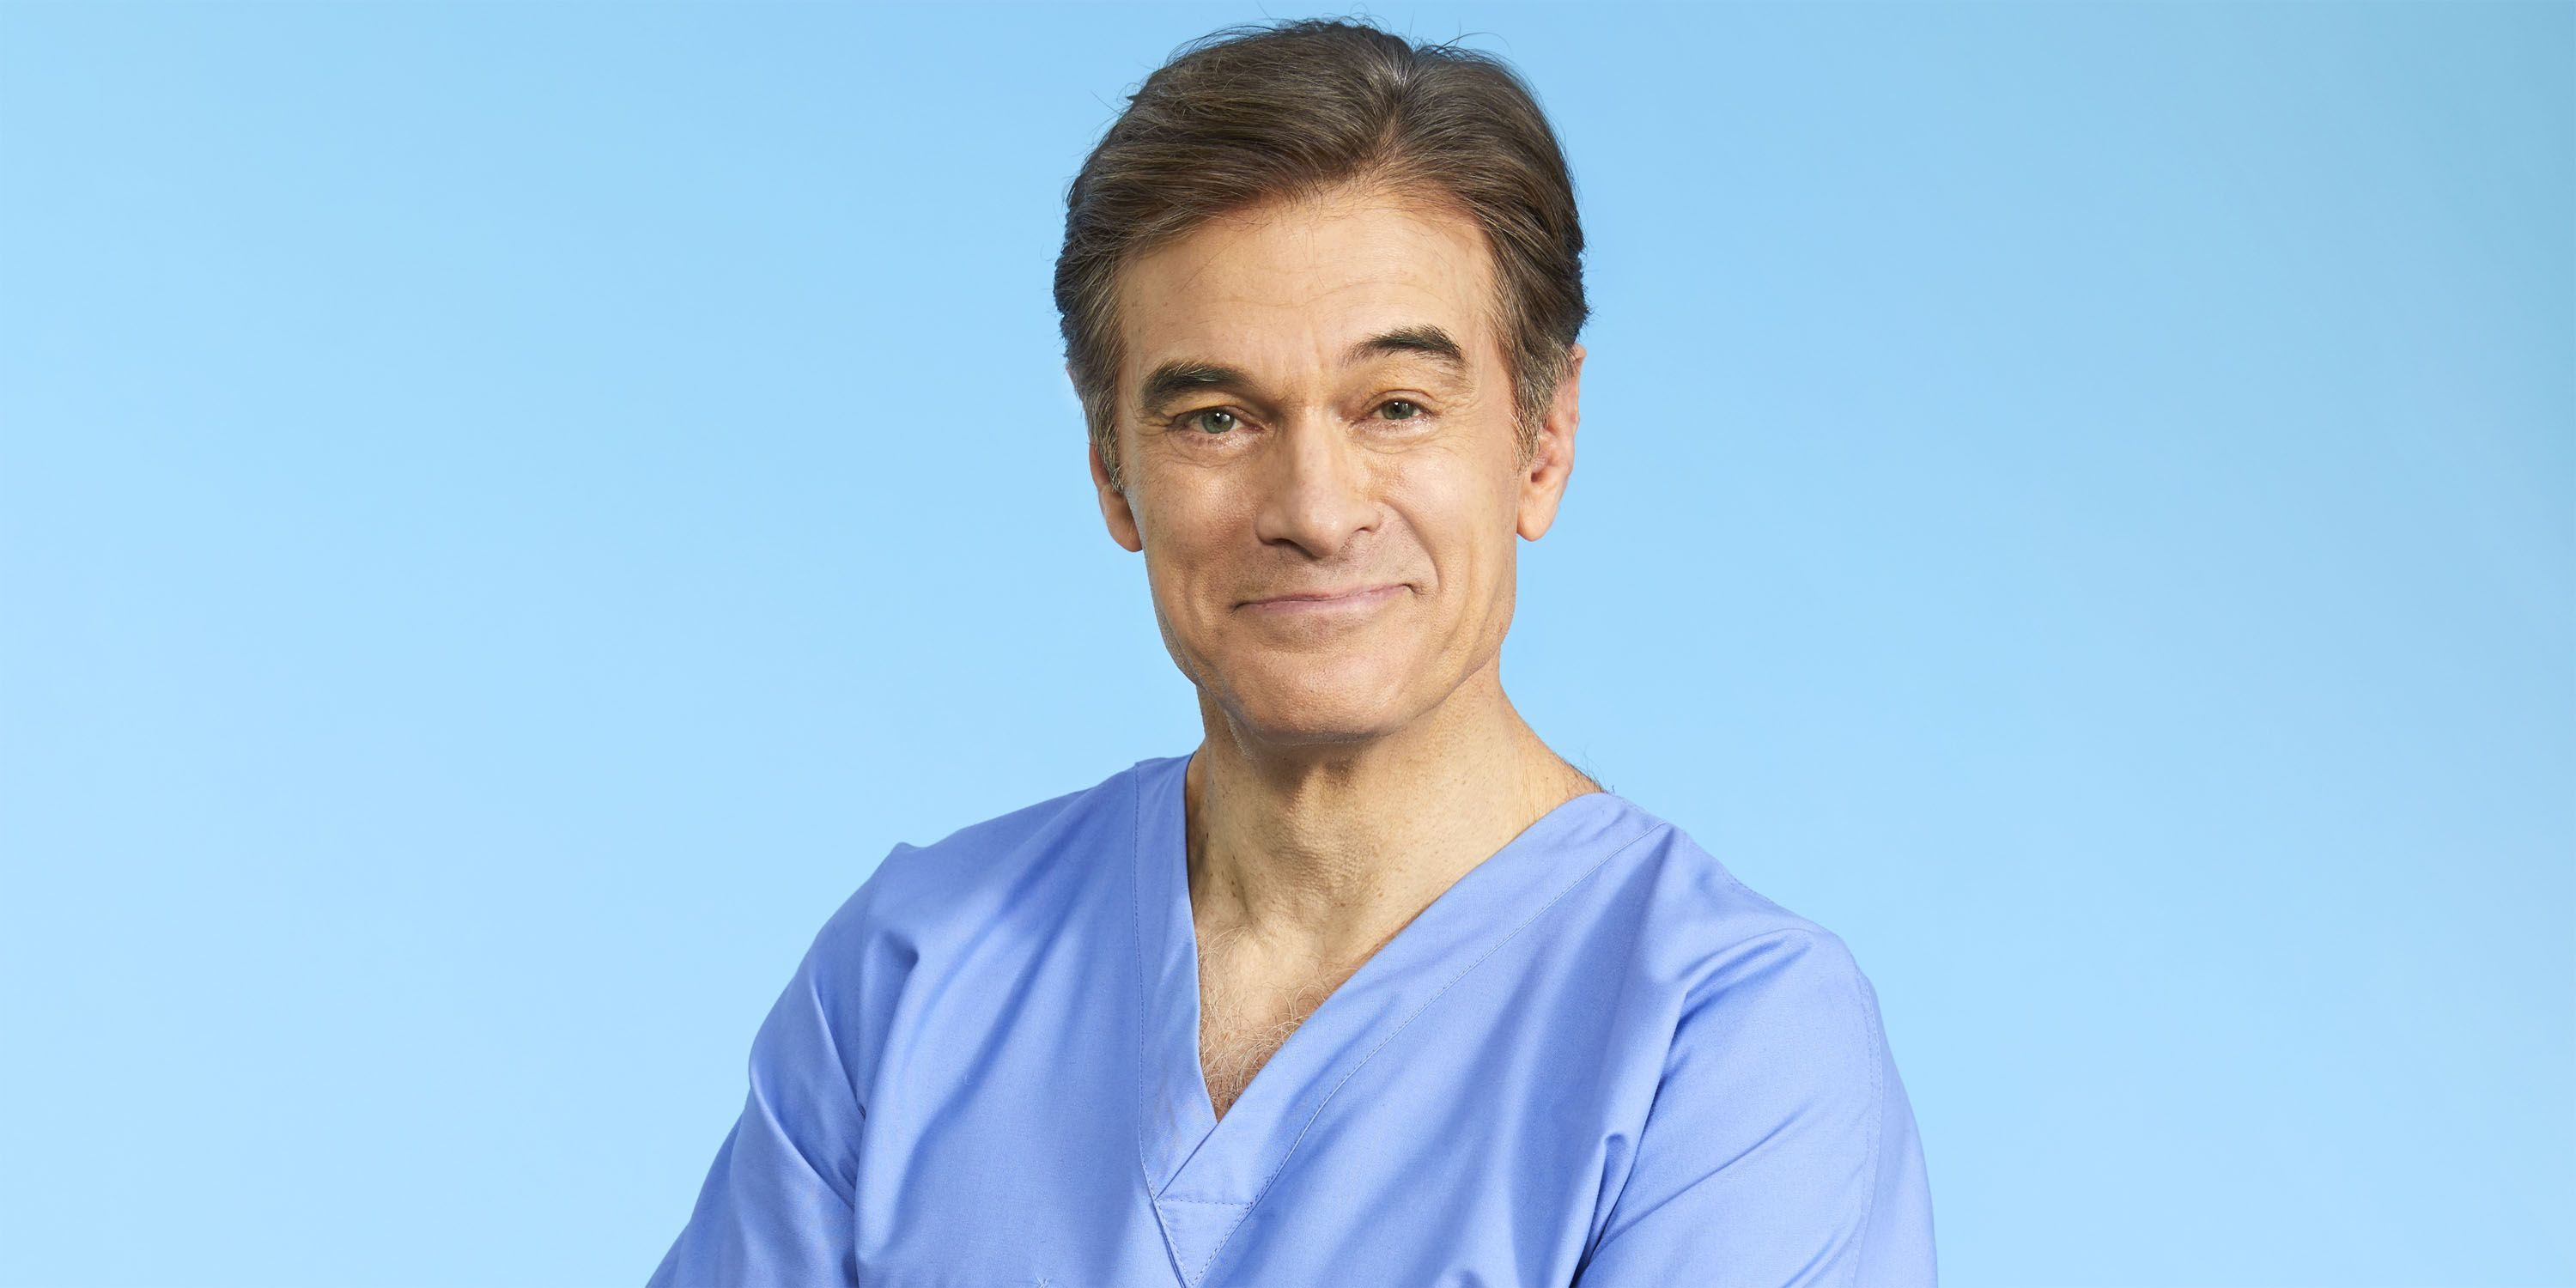 Dr Oz Wallpapers HQ